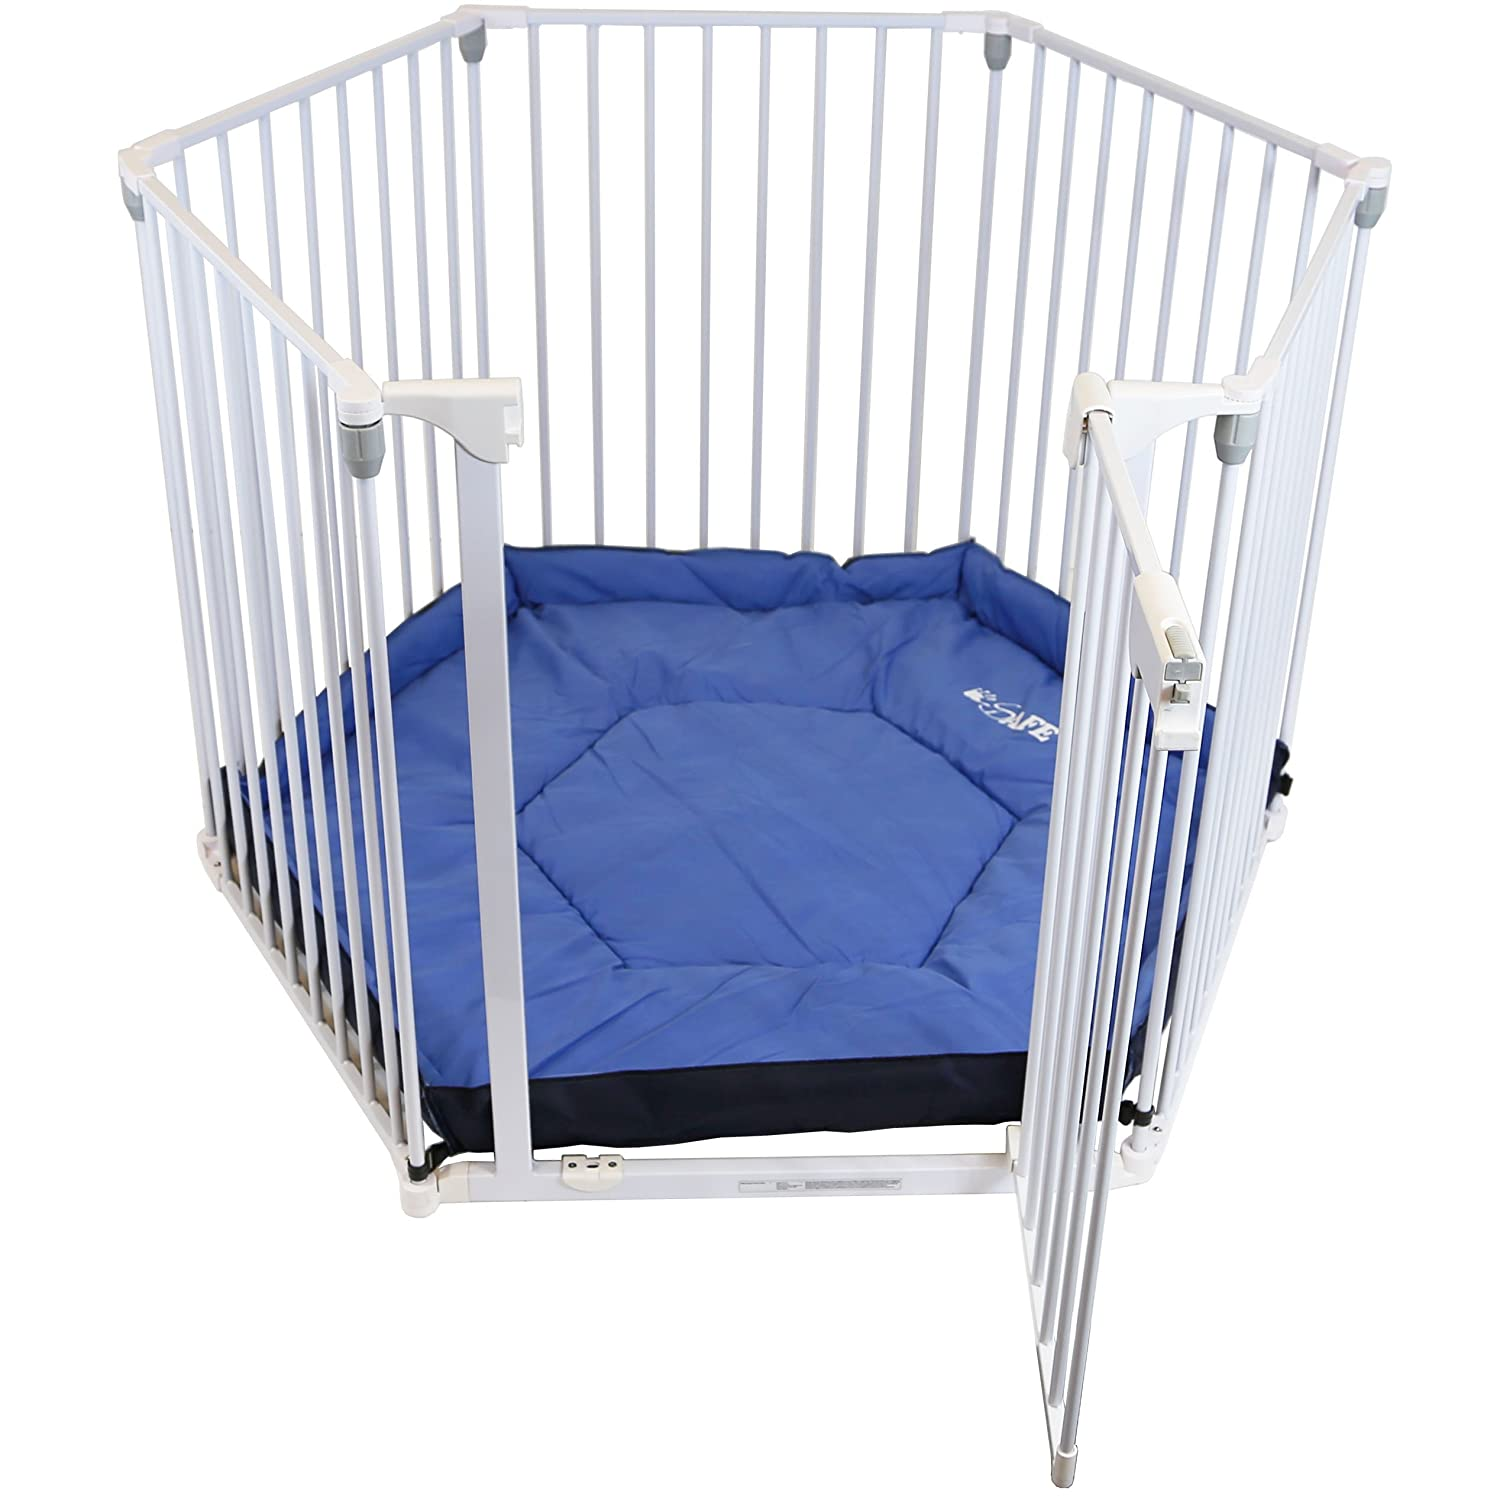 iSafe Metal Playpen 3in1 Fire Guard Room Divider